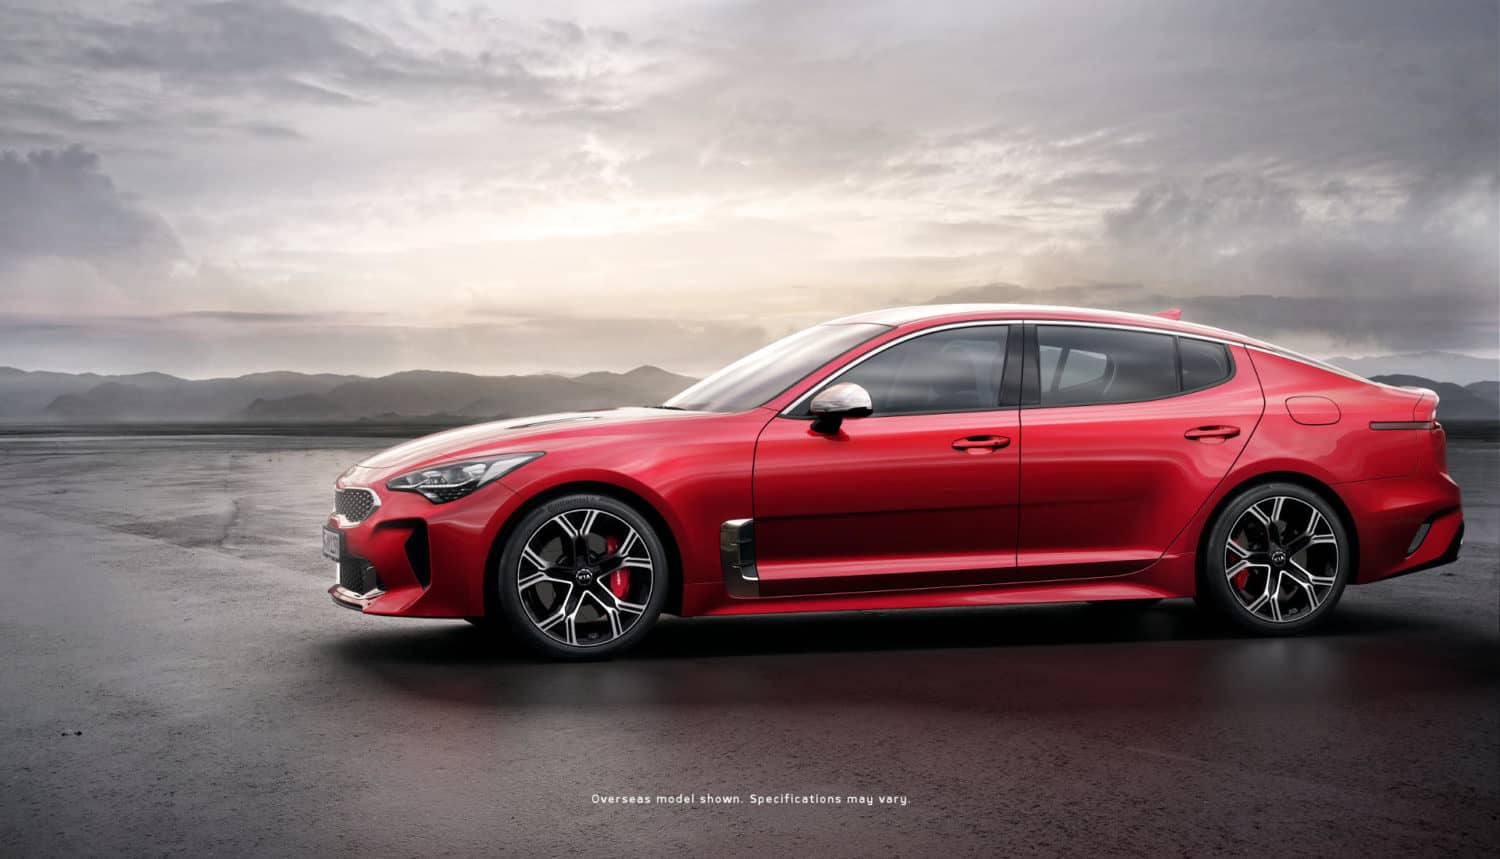 5.0-litre V8 Hyundai Sports Car Unveil At Detroit Auto Show In January